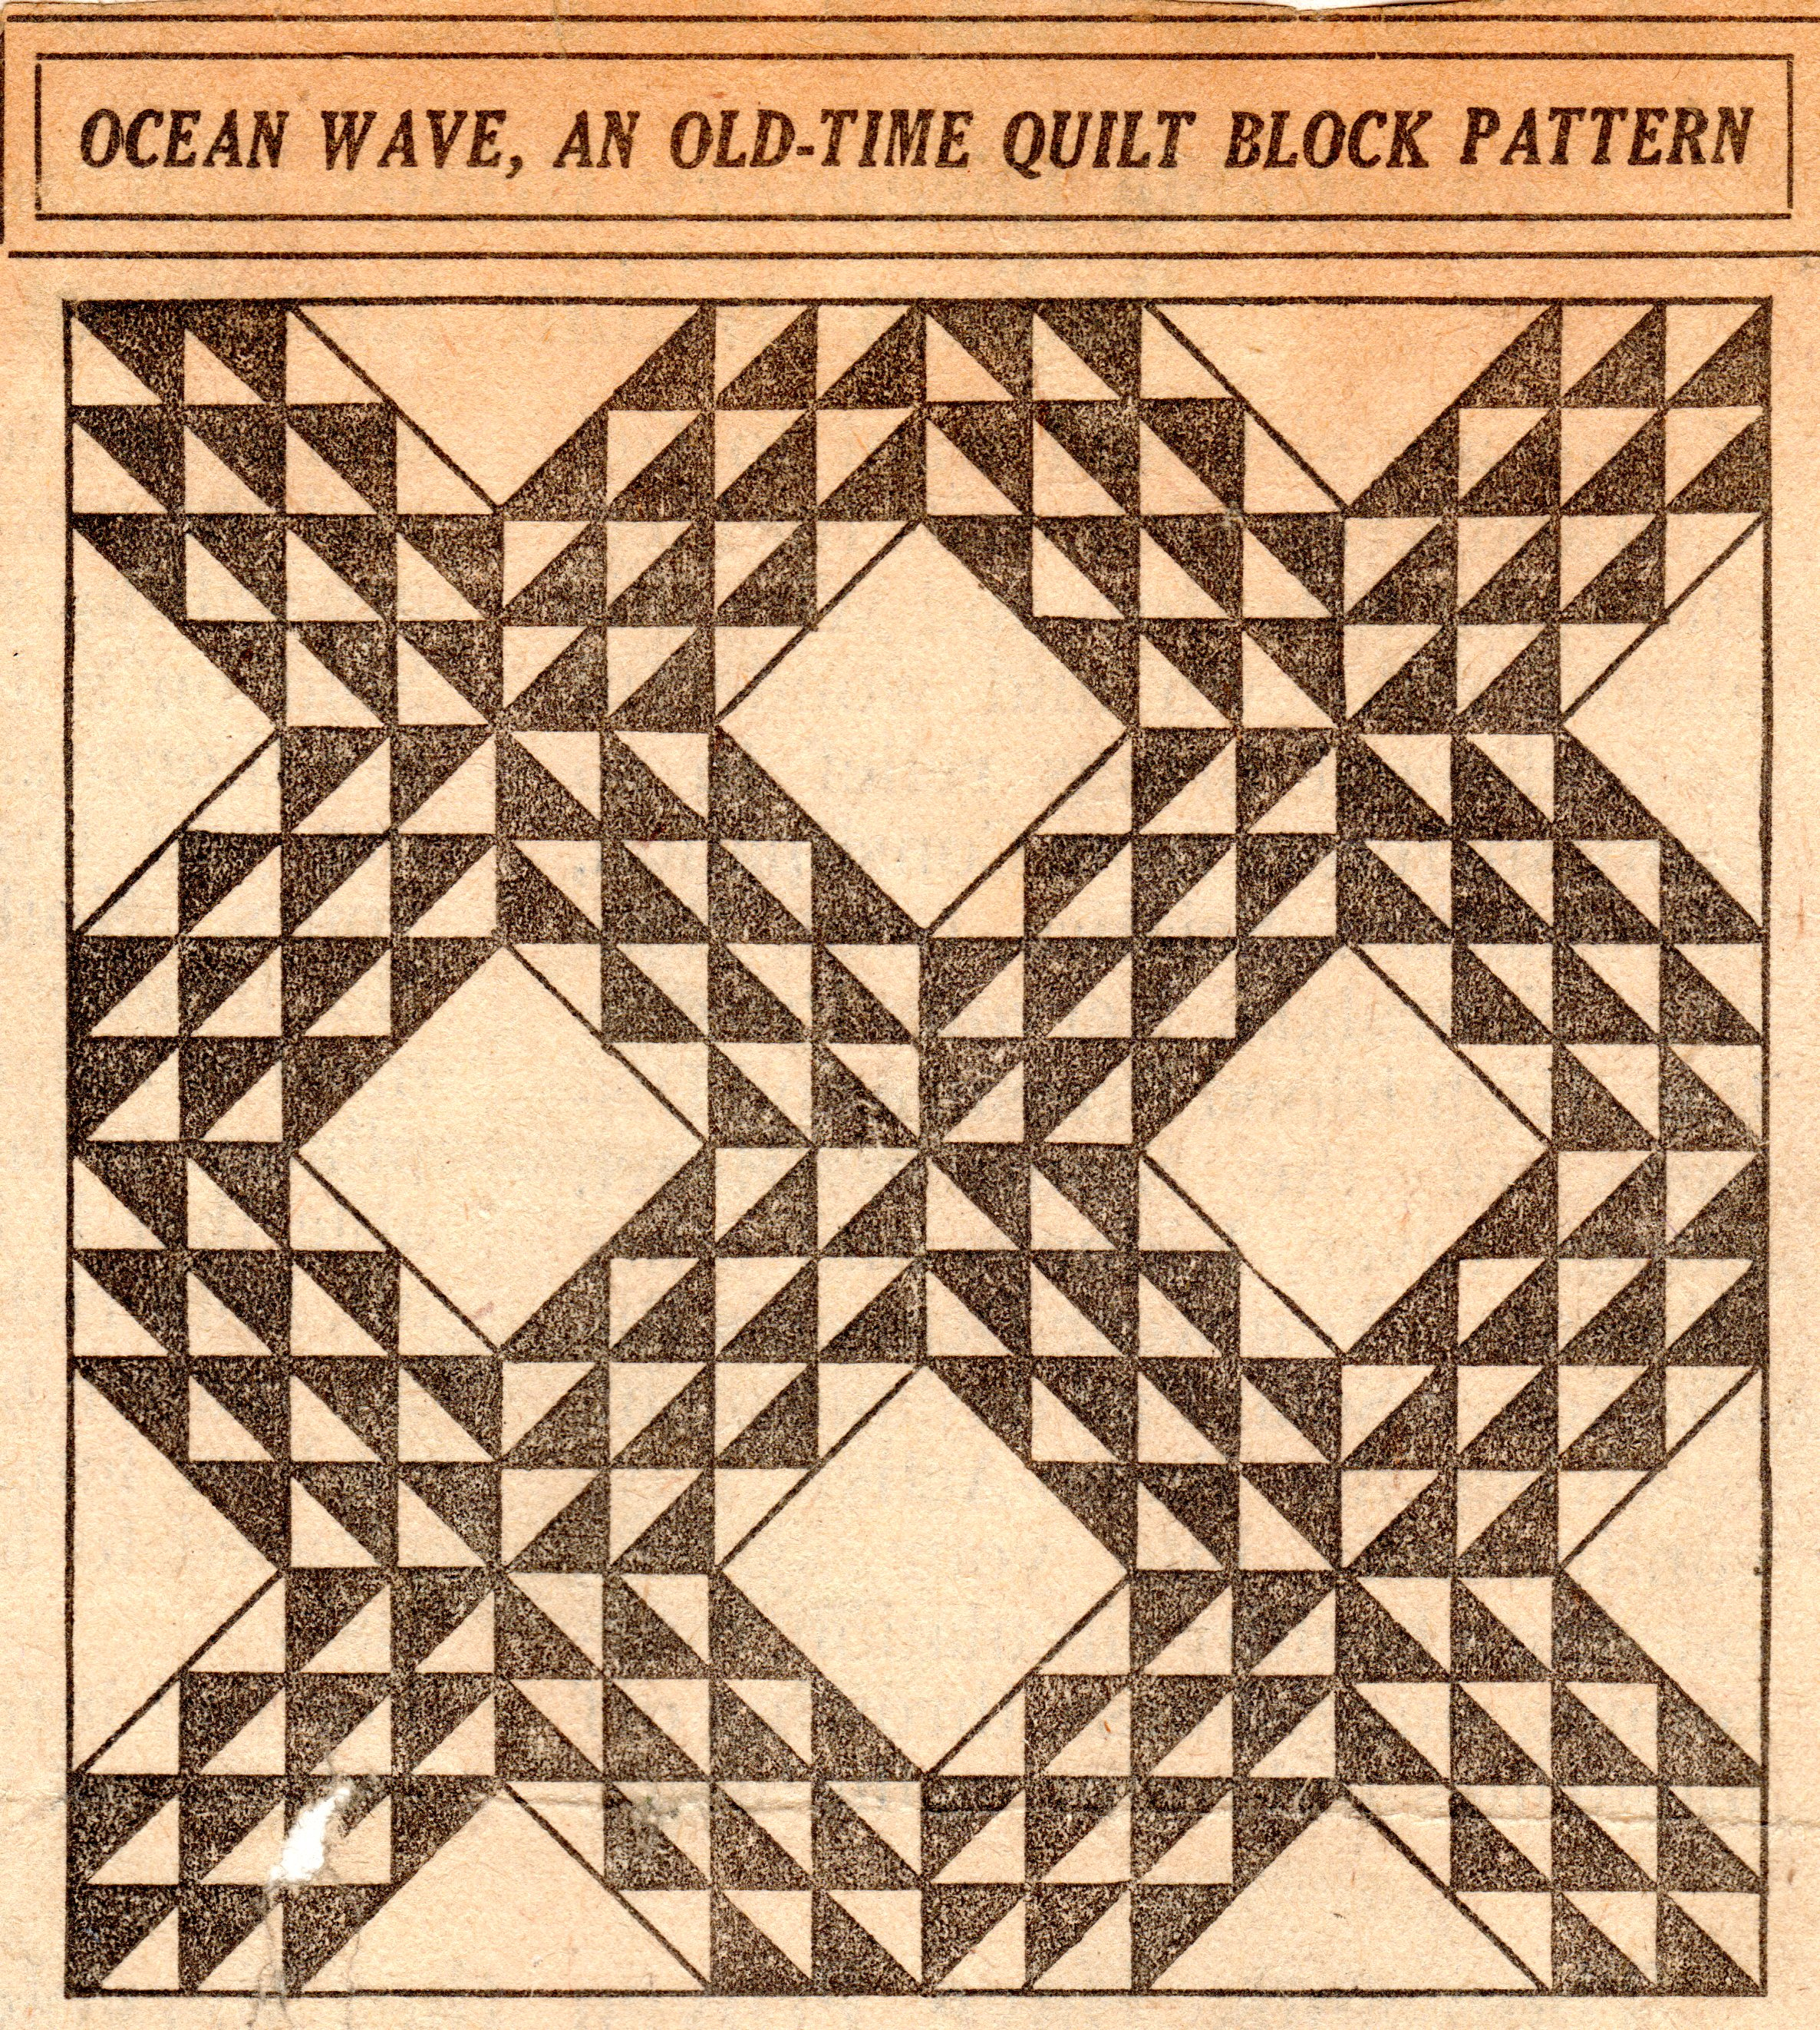 Free quilt pattern archives vintage crafts and more for What to do with an old quilt